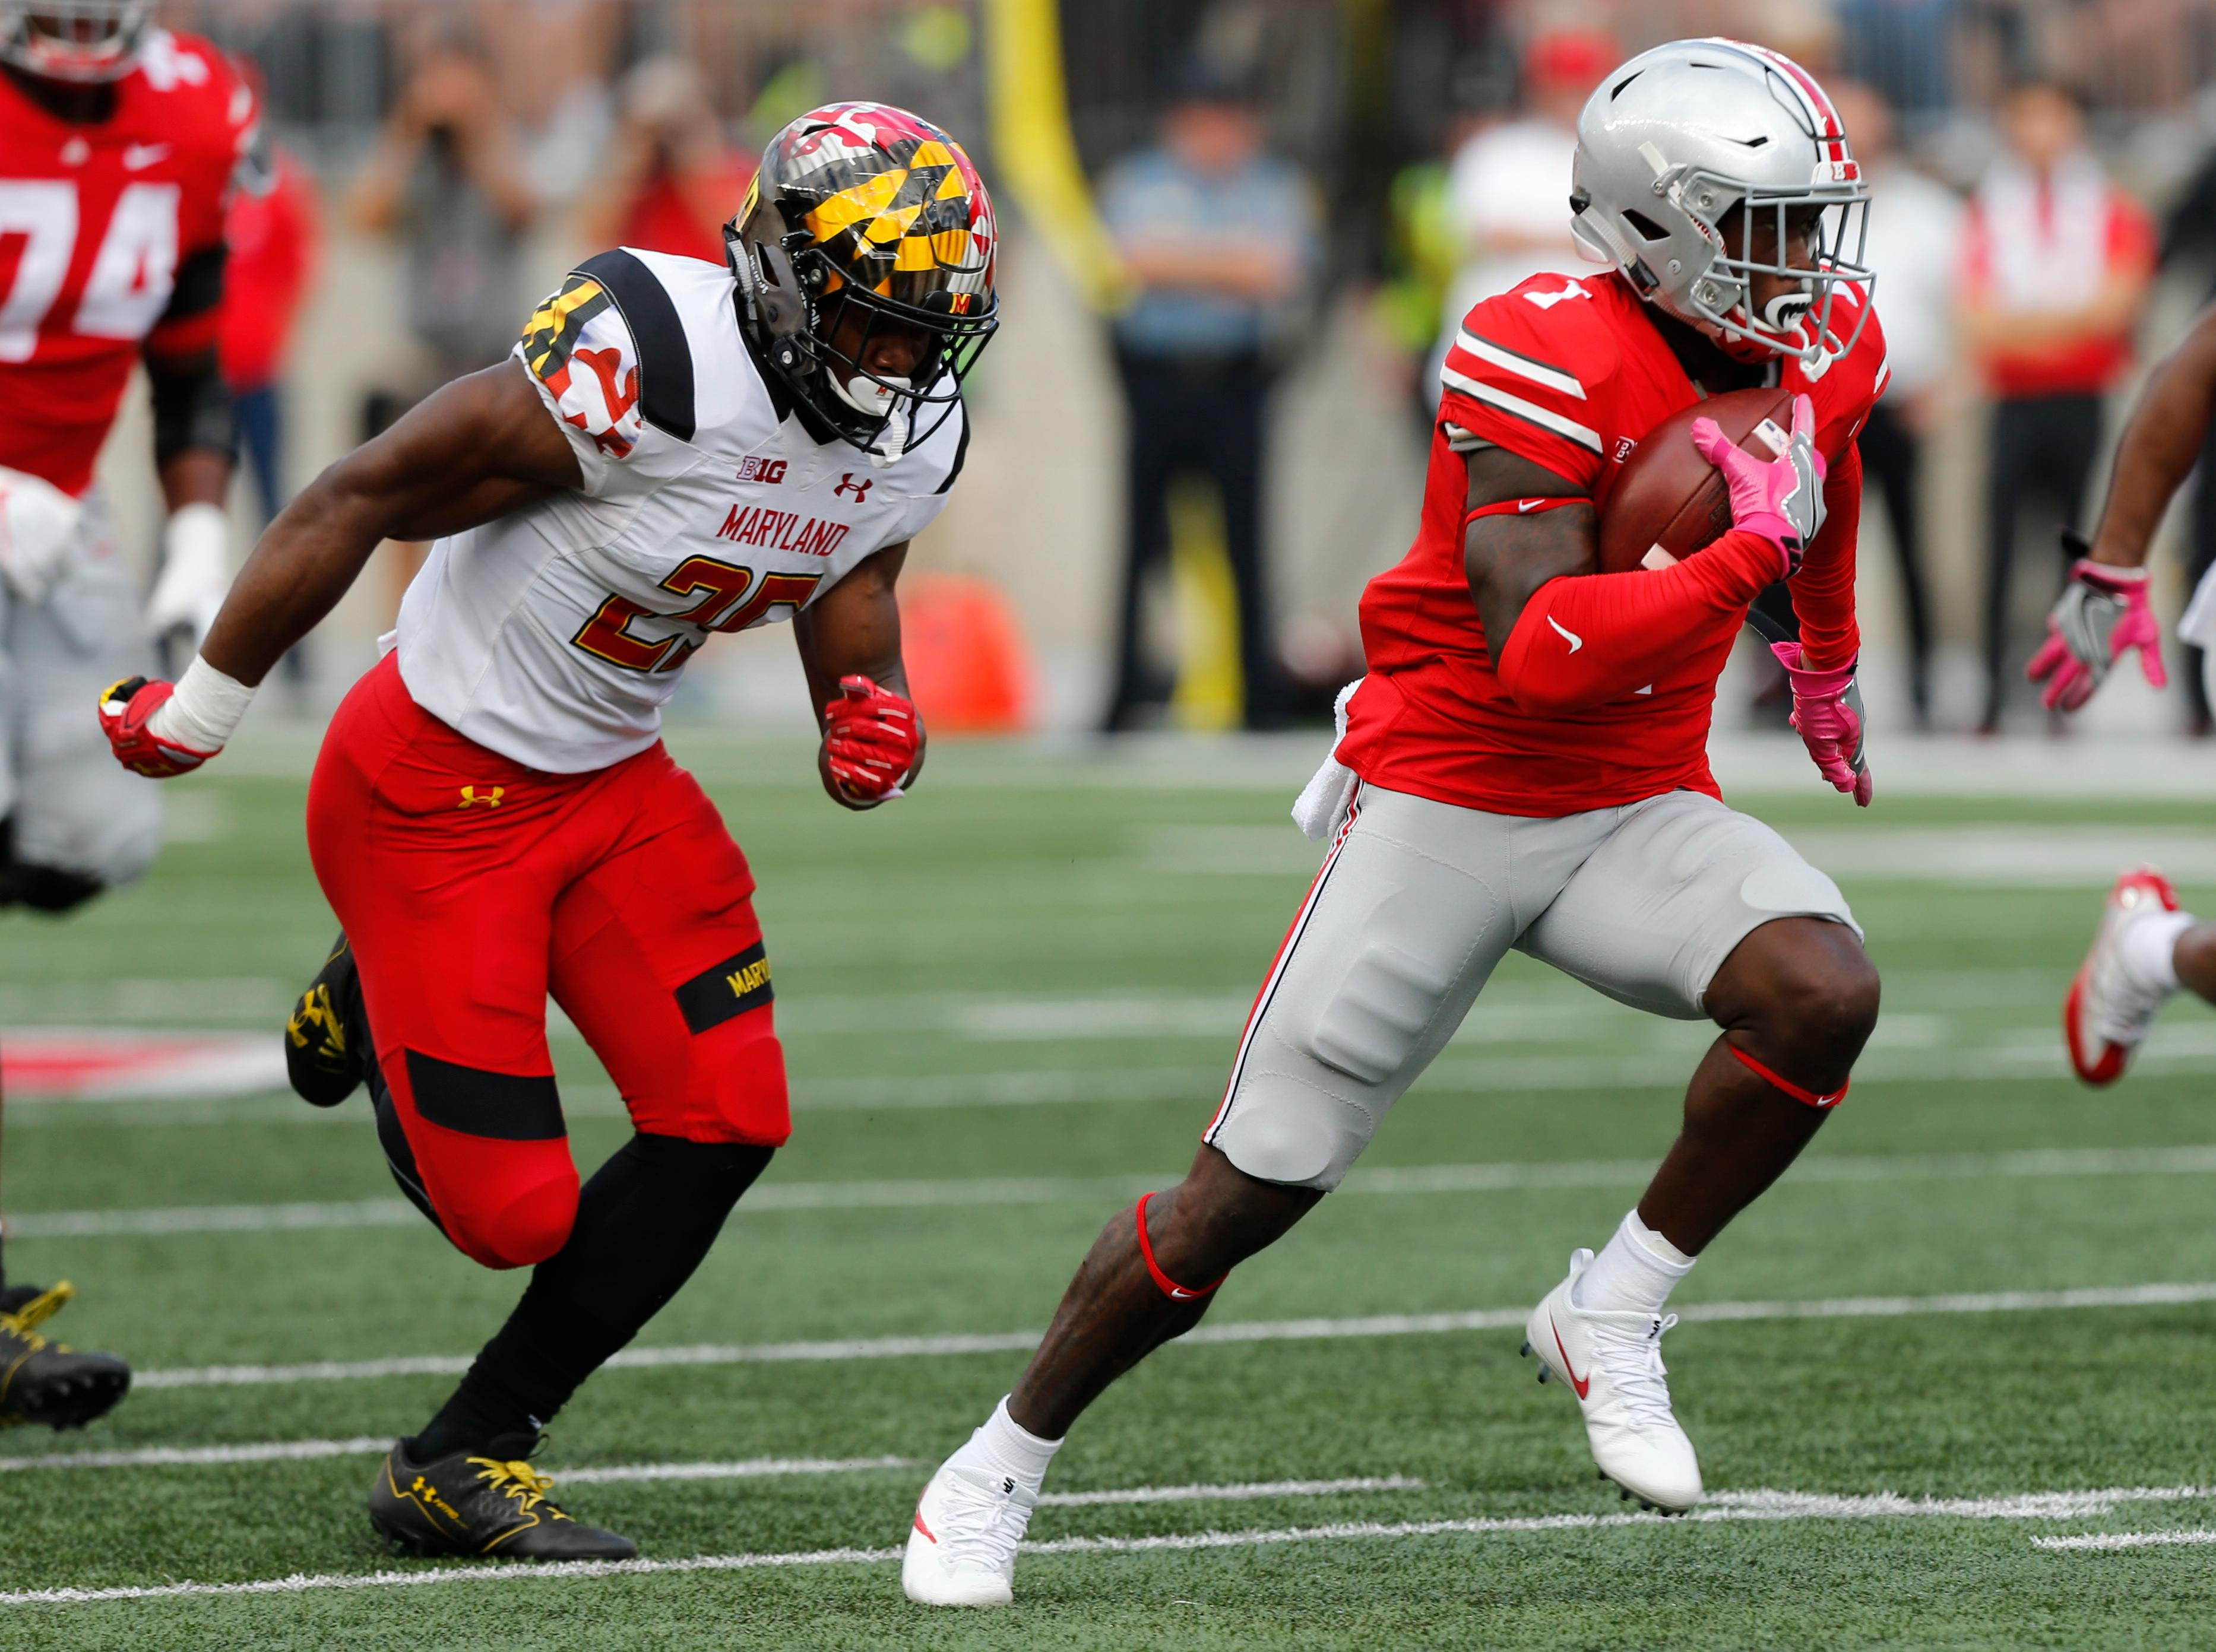 Ohio State receiver Johnnie Dixon, right, runs after a catch as Maryland defender Antoine Brooks chases him during the first half of an NCAA college football game Saturday, Oct. 7, 2017, in Columbus, Ohio. (AP Photo/Jay LaPrete)